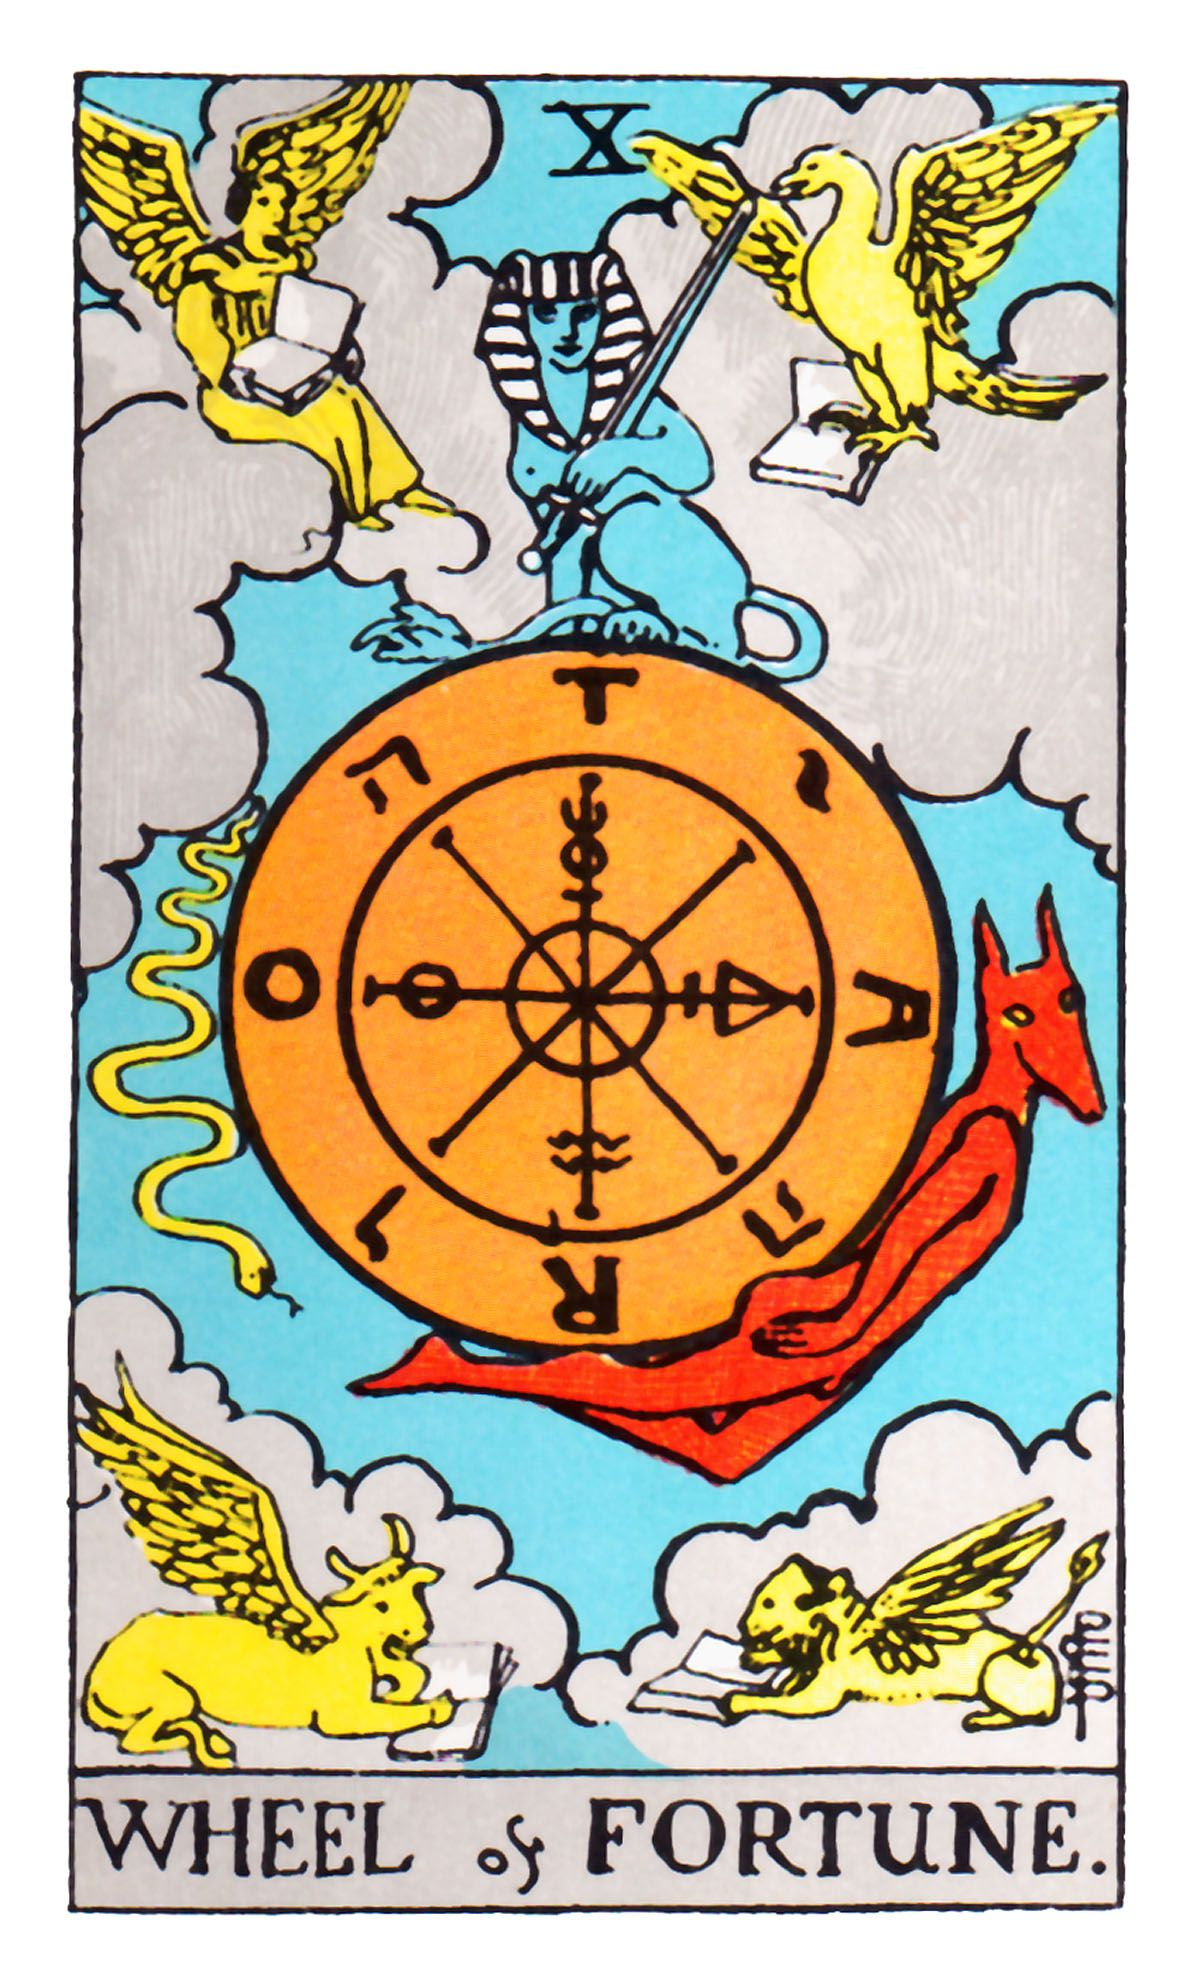 Tarot Symbols And The O Jays On Pinterest: X. The Wheel Of Fortune. The Original Rider Waite Tarot